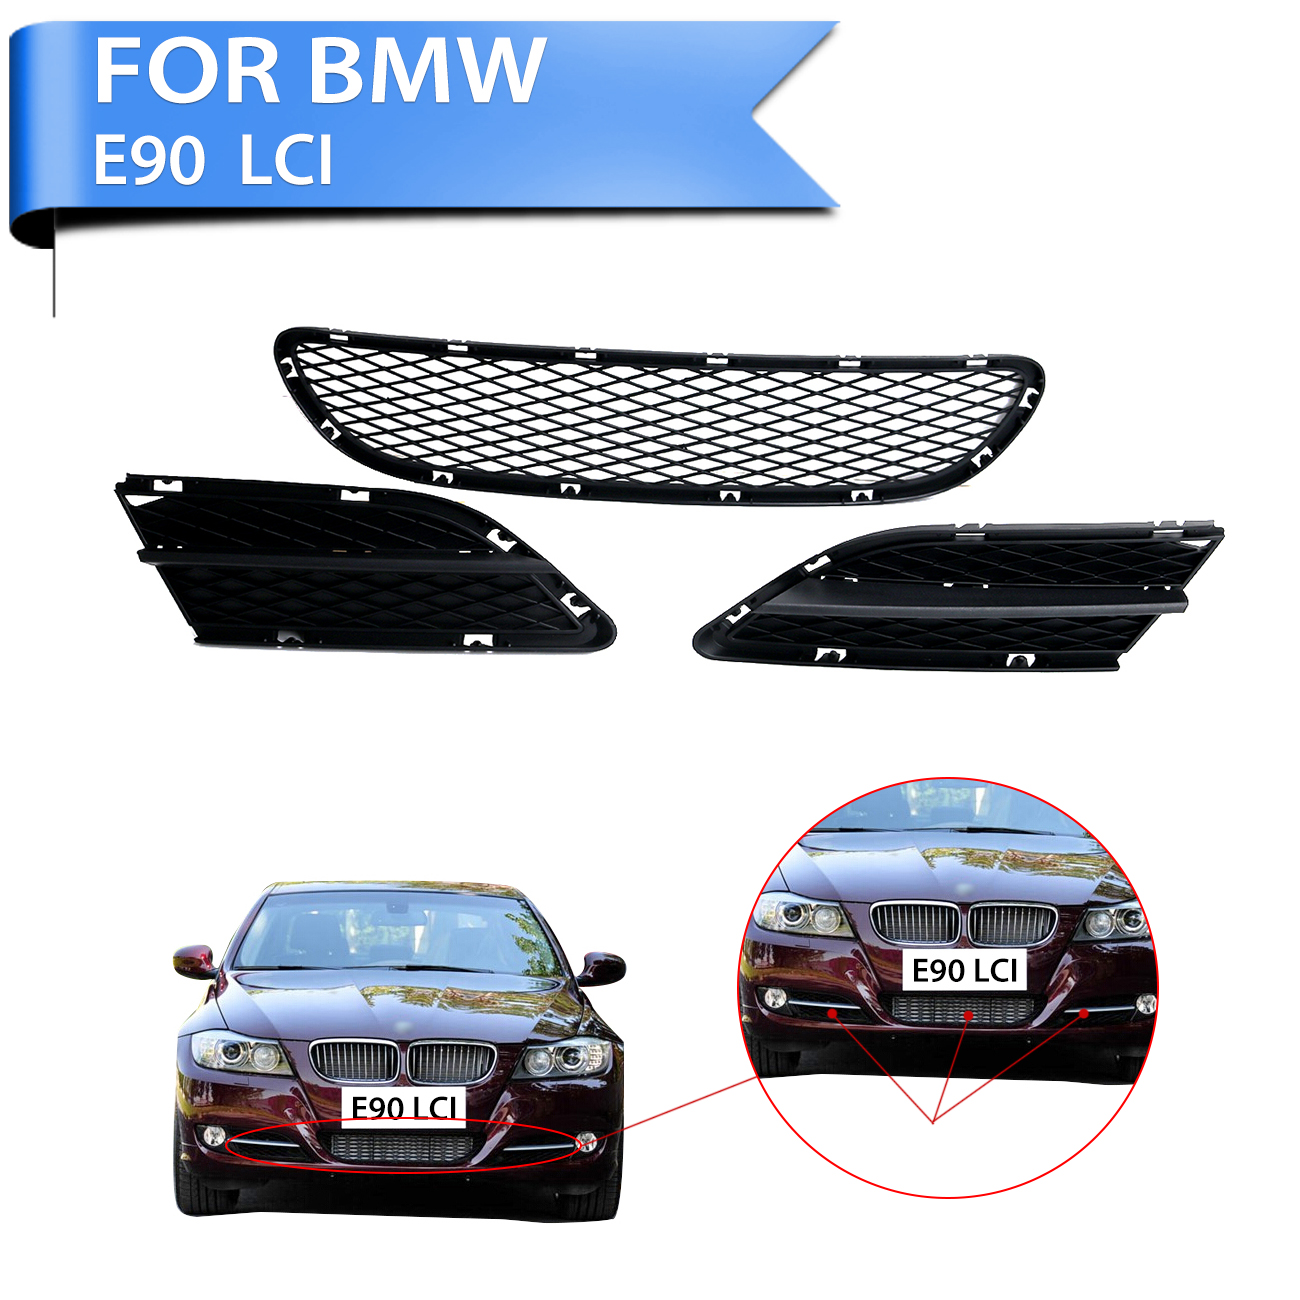 Car Front Bumper Lower Grille Grills Grid Decorate Trim Set For BMW 3-Series 325 328 335 E90 LCI 2009 2010 2011 #W141 abs chrome front grille around trim for ford s max smax 2007 2010 2011 2012